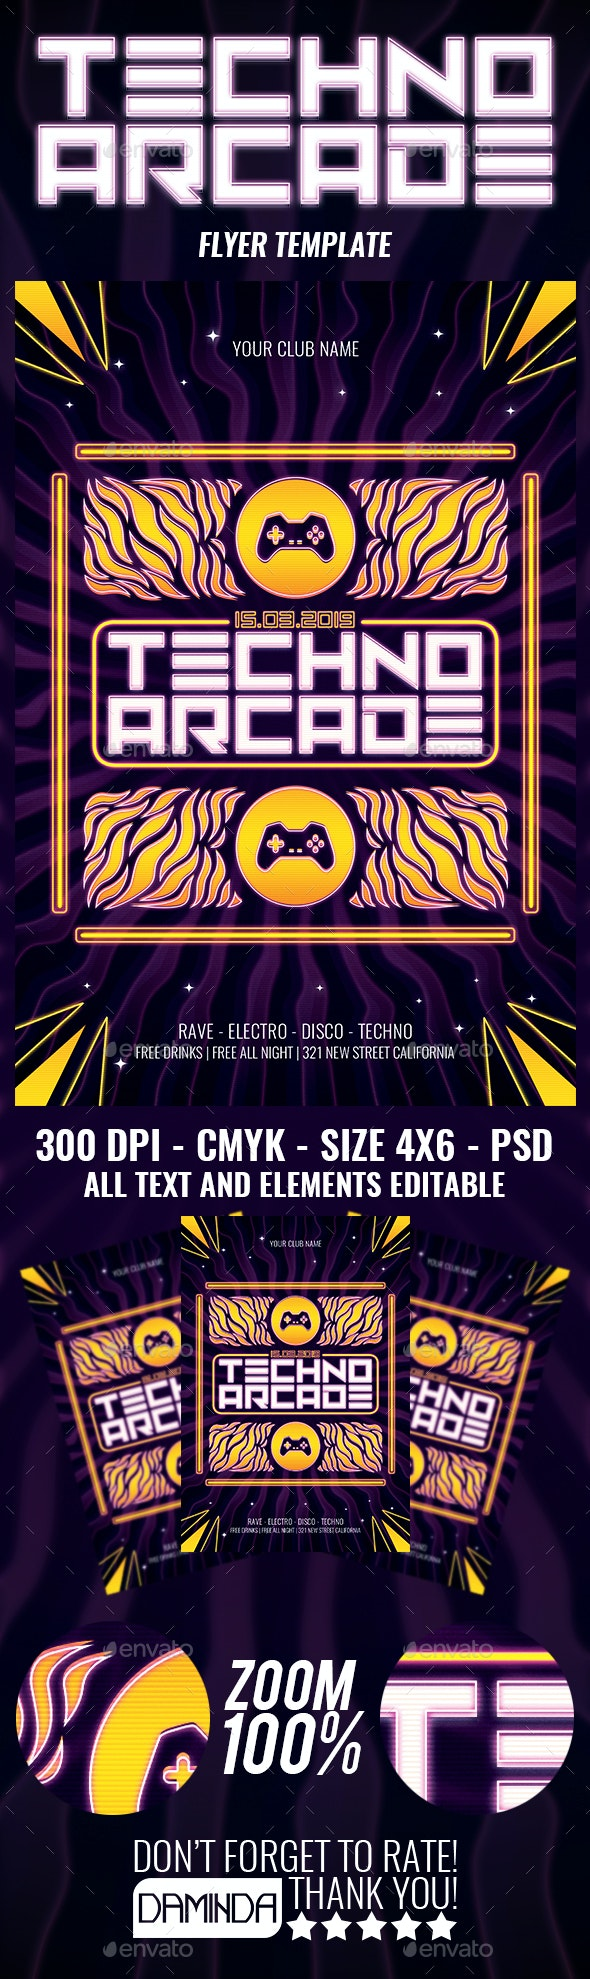 Techno Arcade New 3 Flyer Template - Clubs & Parties Events